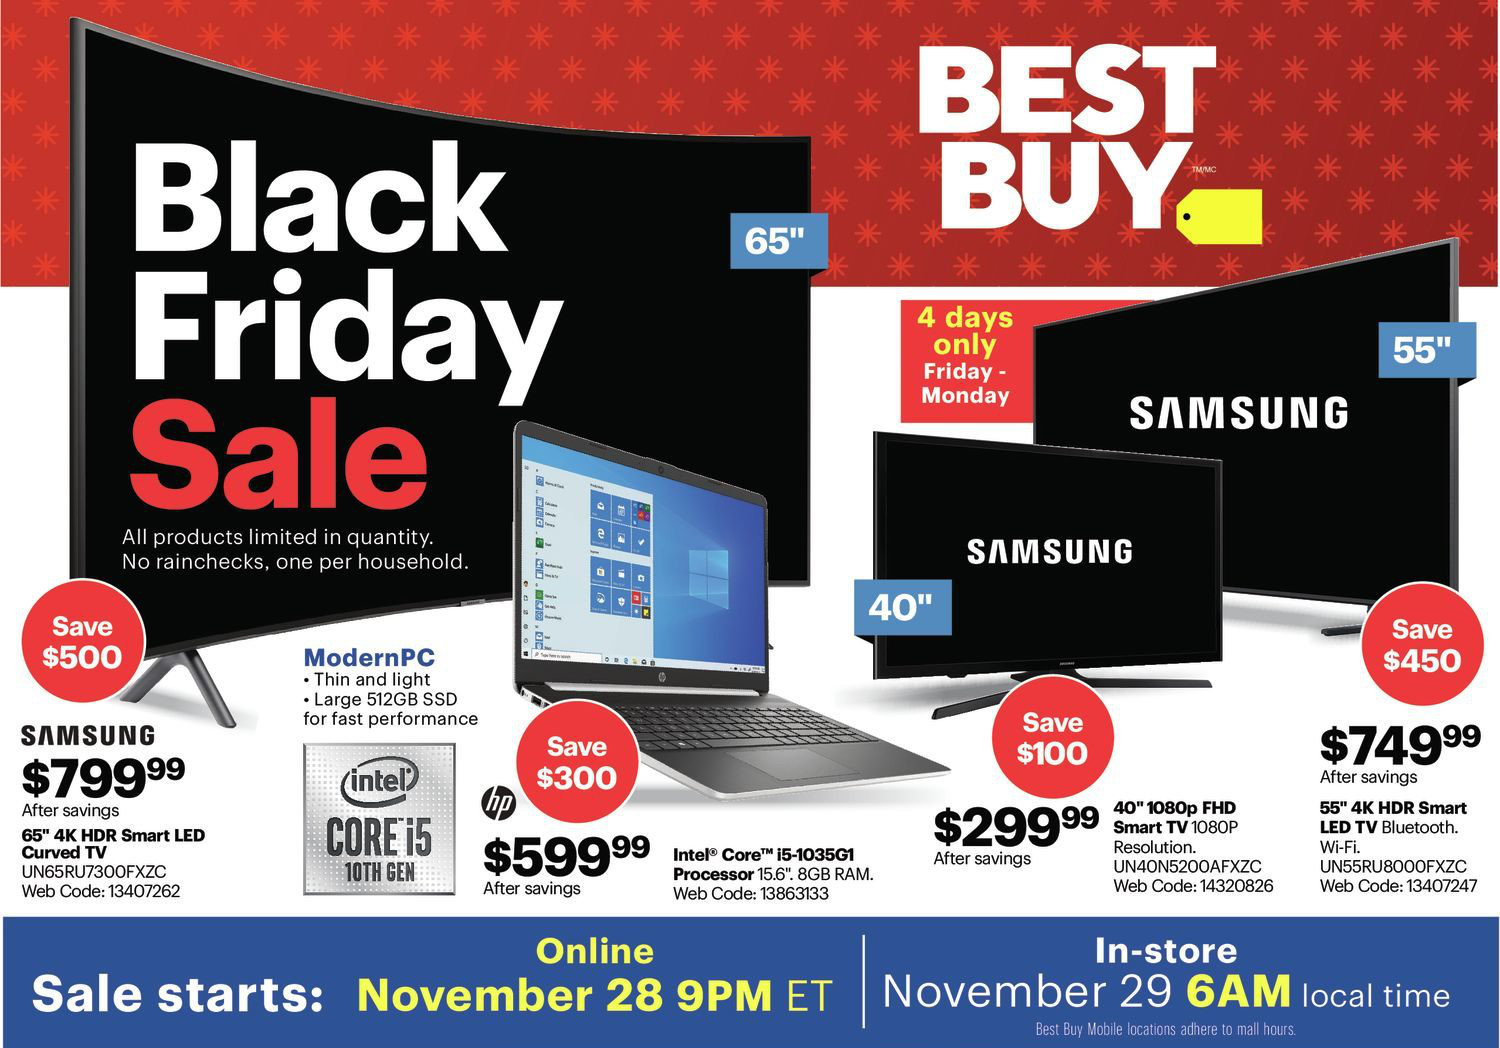 Best Buy Canada Black Friday Cyber Monday Week 2019 Flyer Deals Full Canadian Freebies Coupons Deals Bargains Flyers Contests Canada